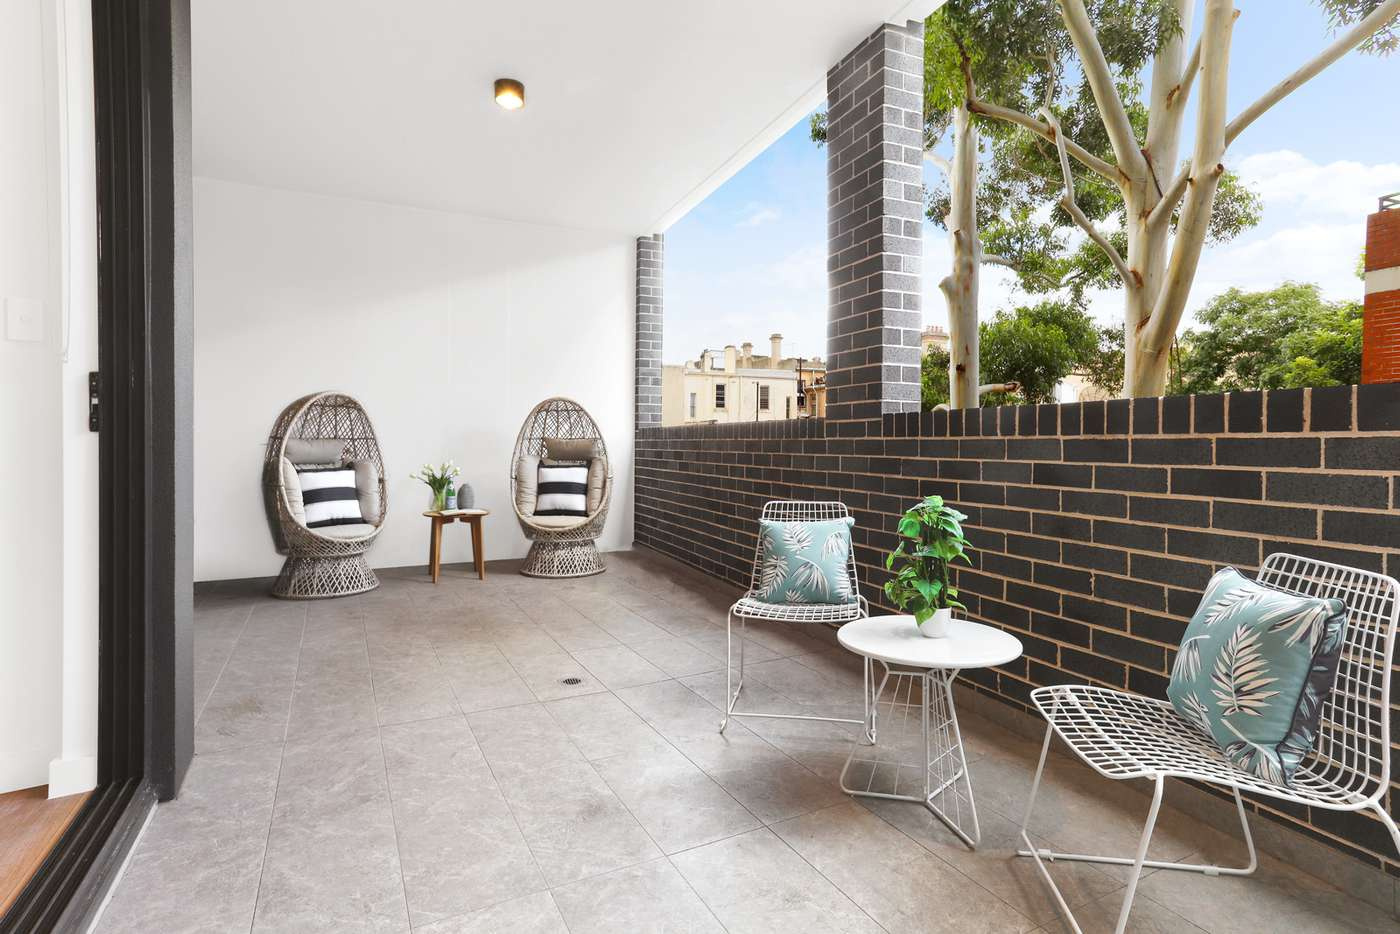 Fifth view of Homely apartment listing, 102/2 Murrell Street, Ashfield NSW 2131